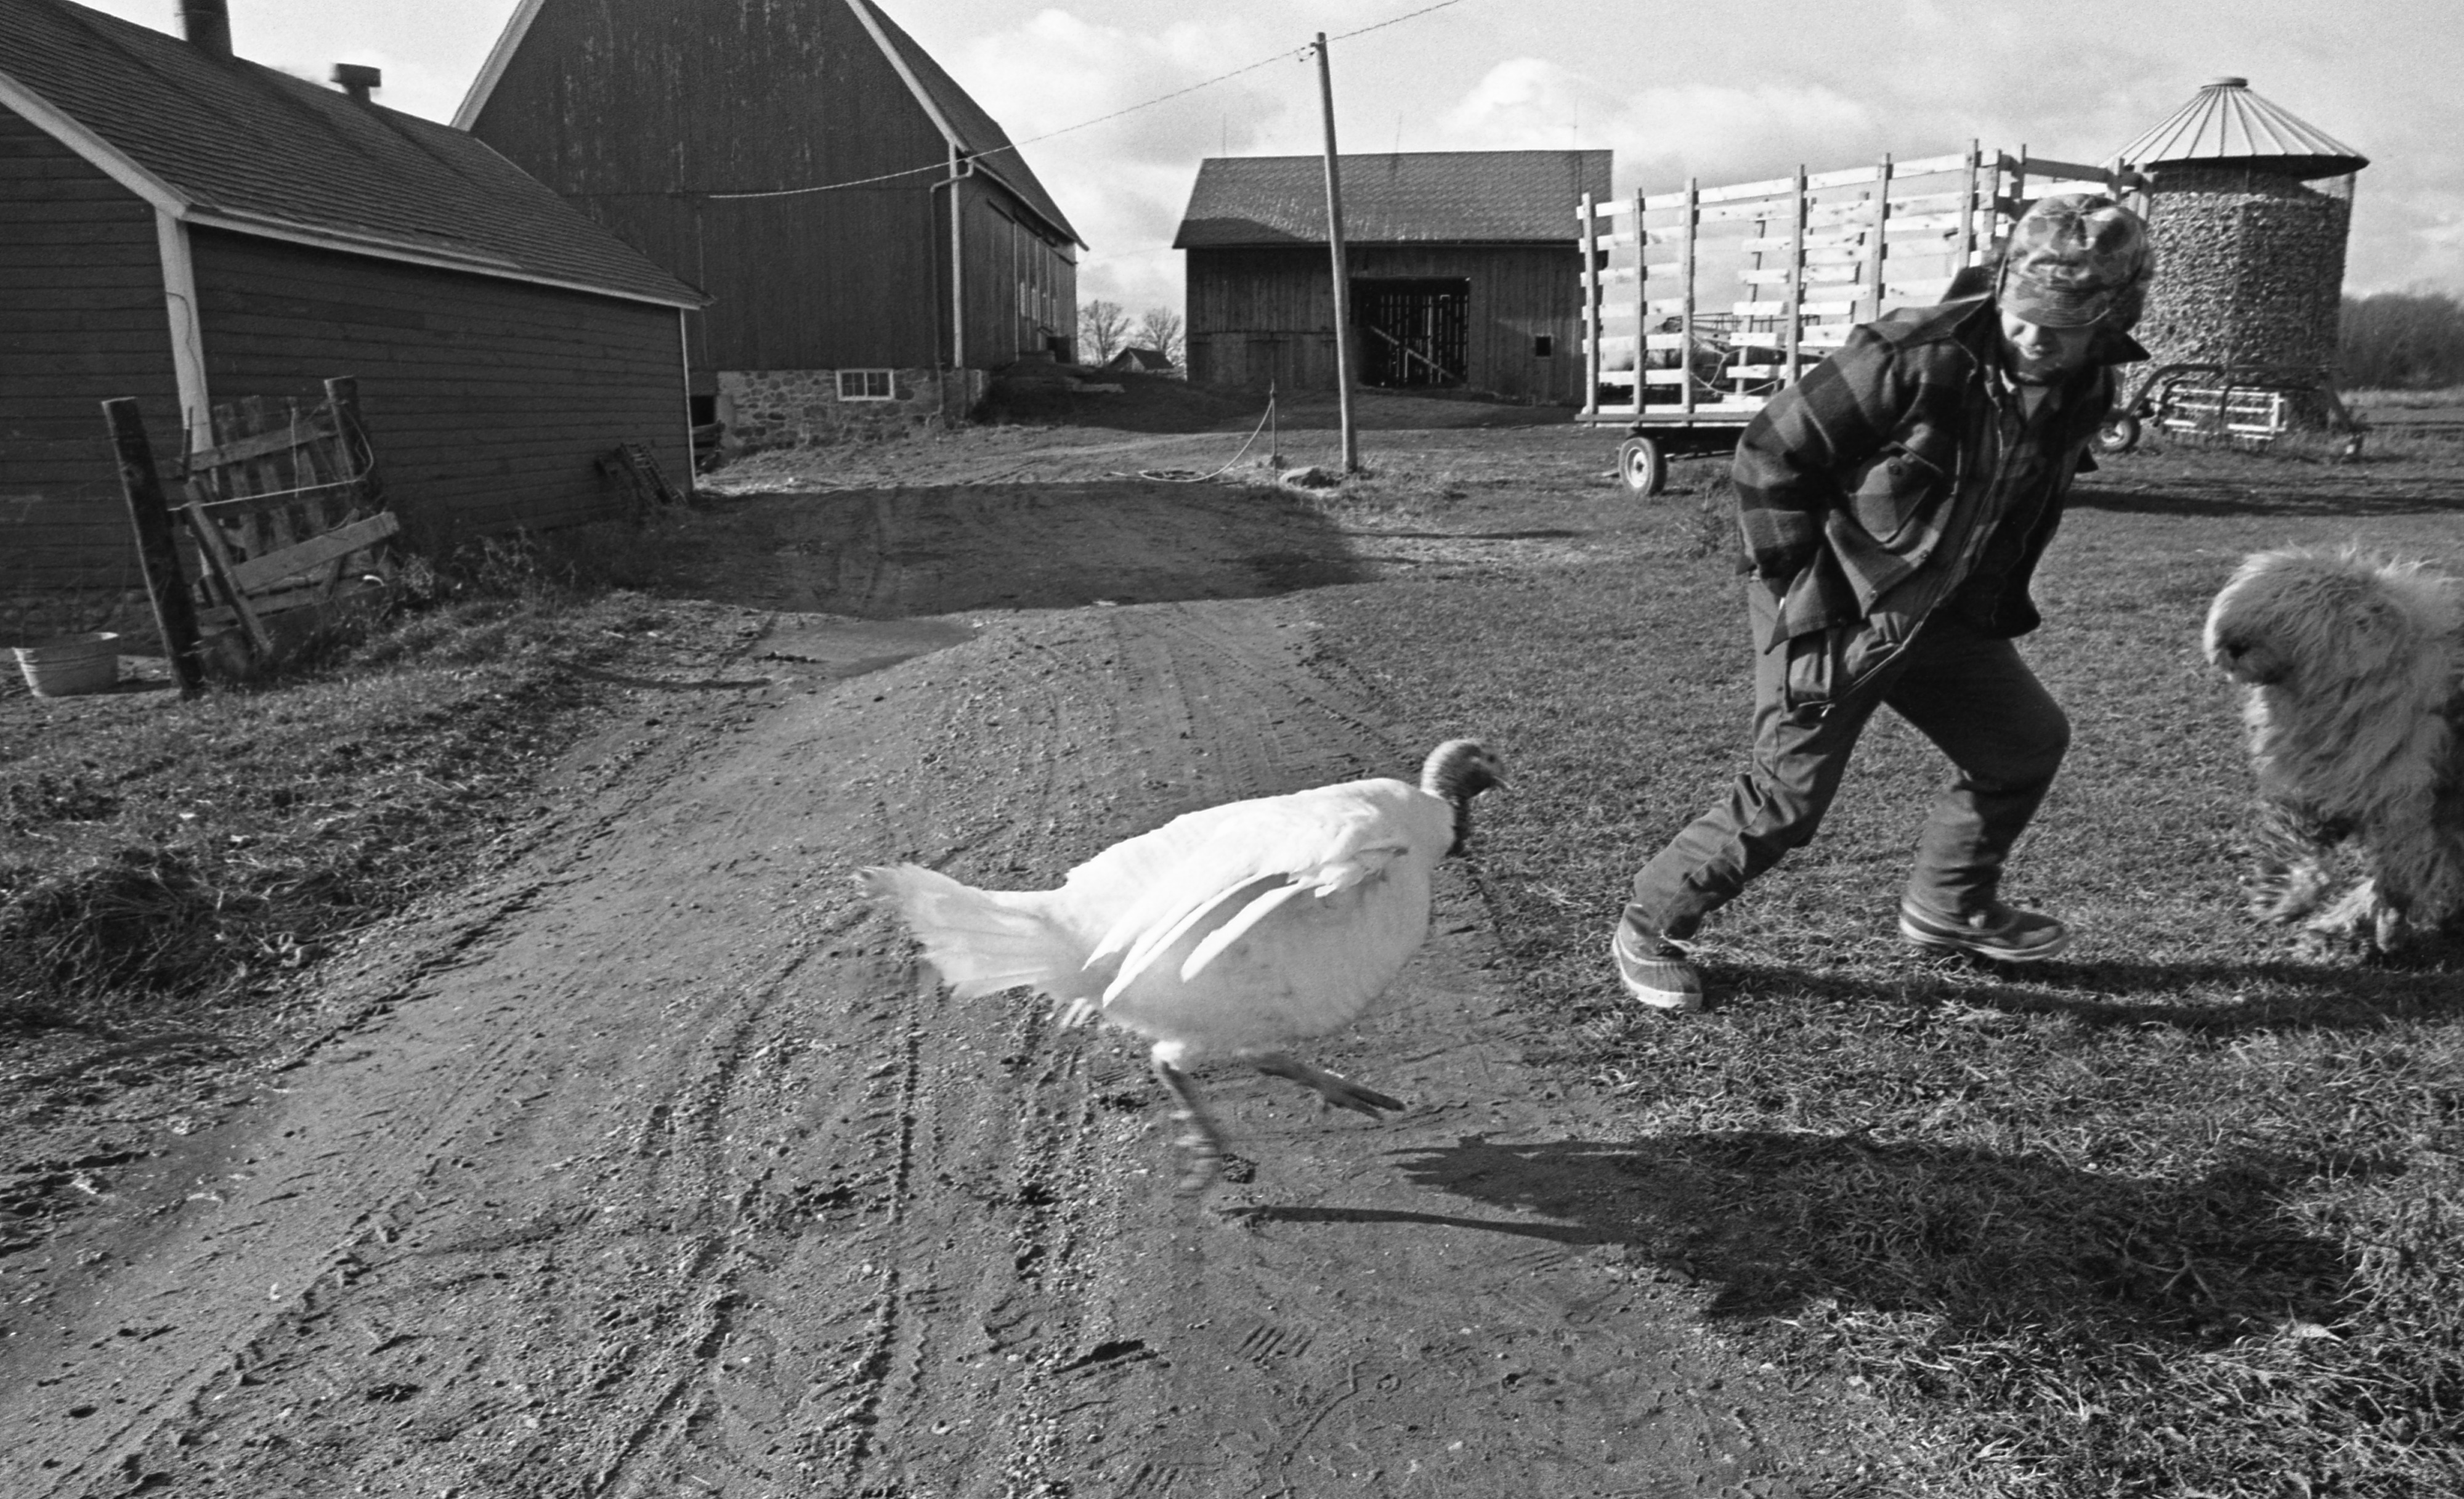 Tom The Turkey Chases A Visitor On The Strieter Farm, November 1974 image